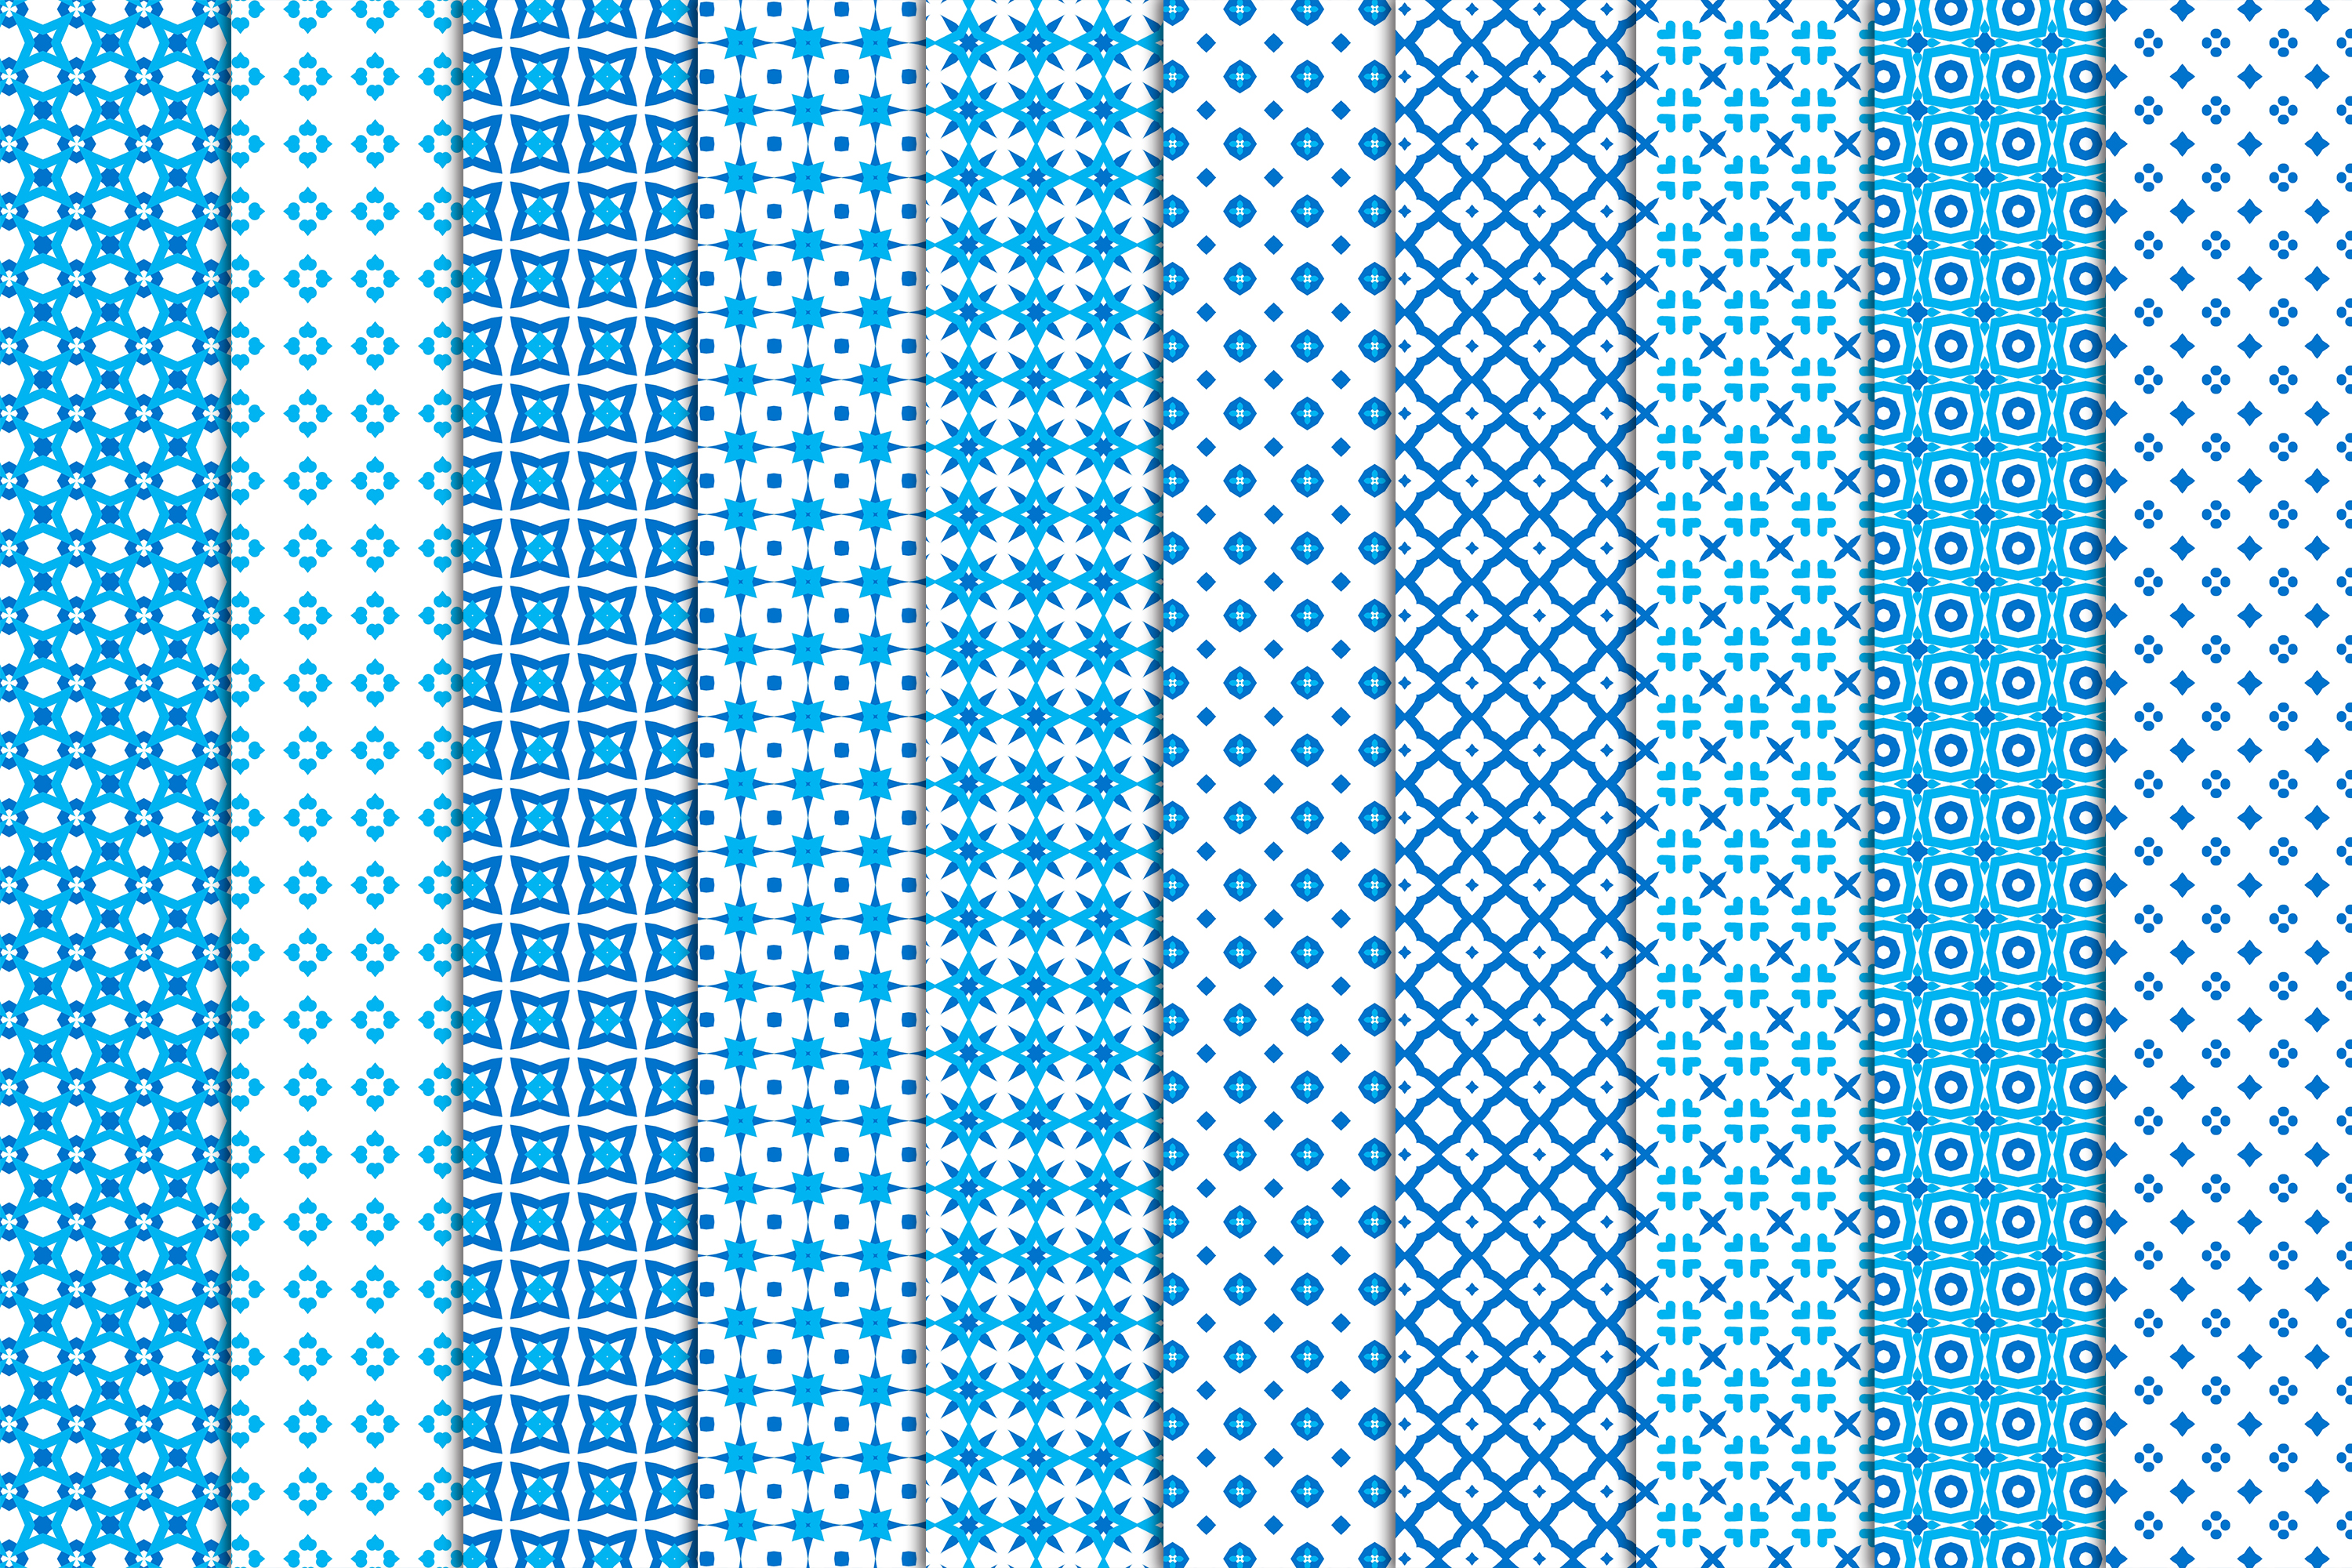 Winter Patterns example image 2